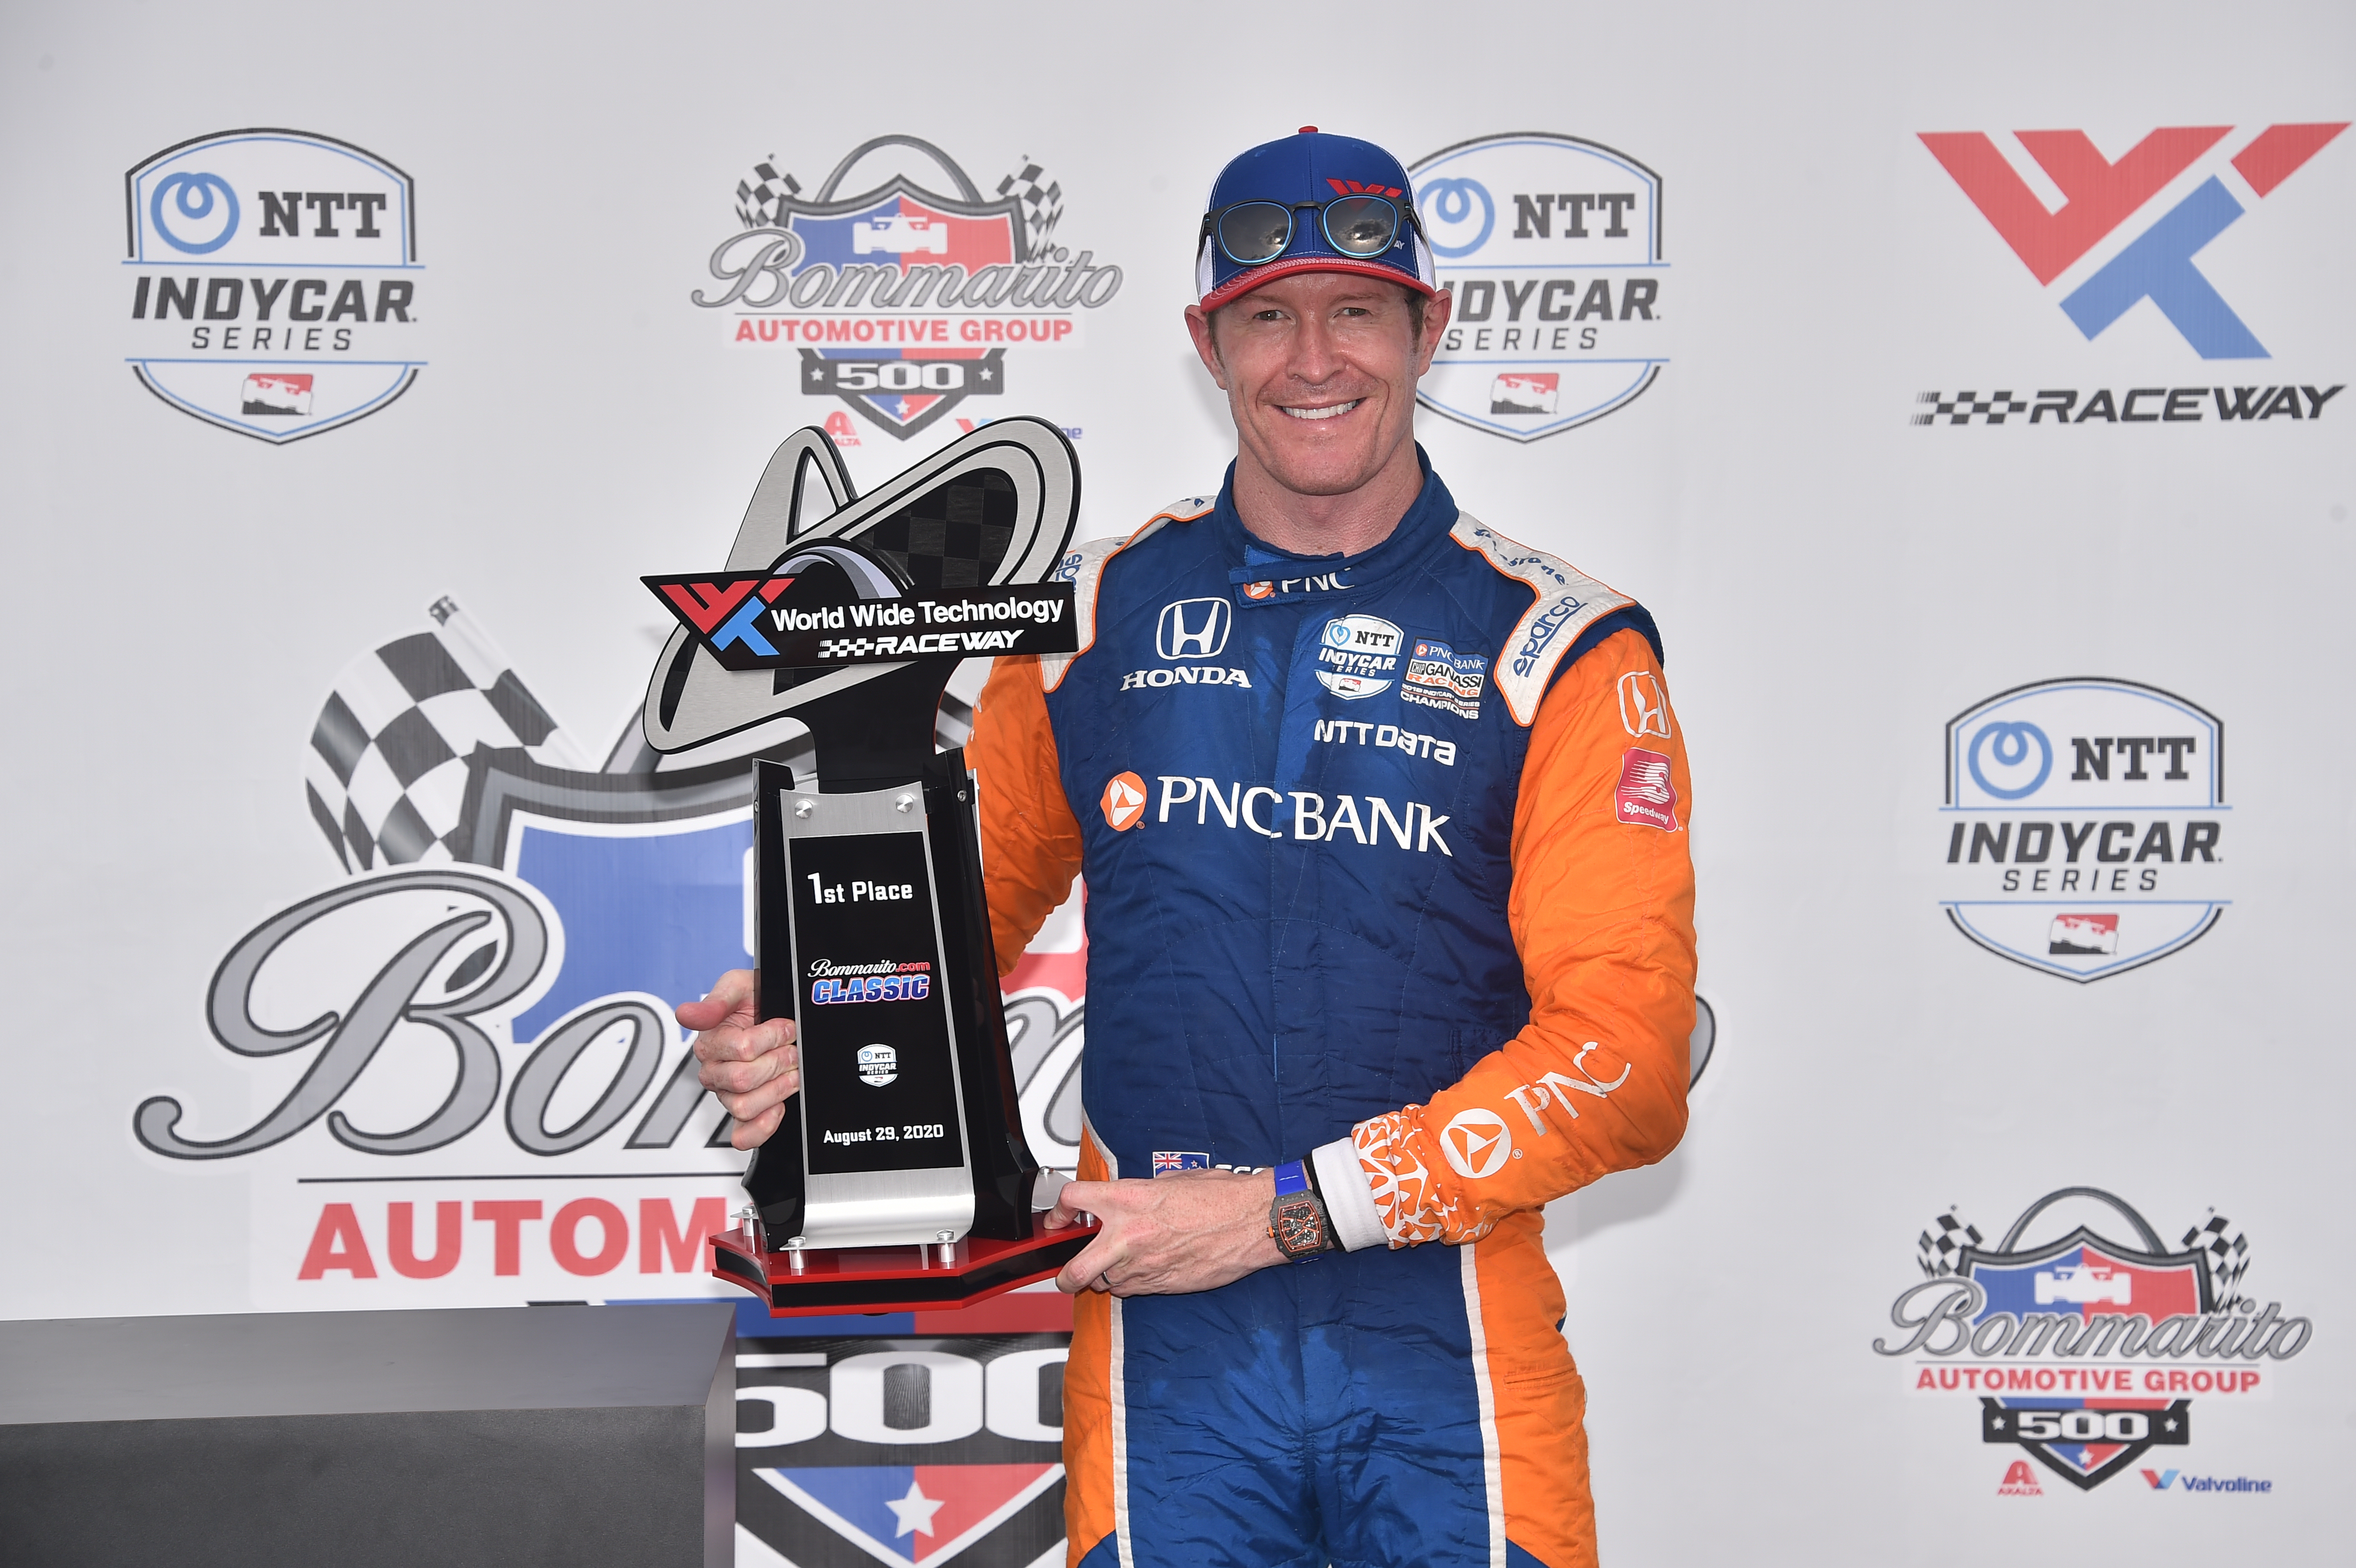 PNC Bank IndyCar driver Scott Dixon wins the Bommarito Automotive Group 500 Race 1 at World Wide Technology Raceway